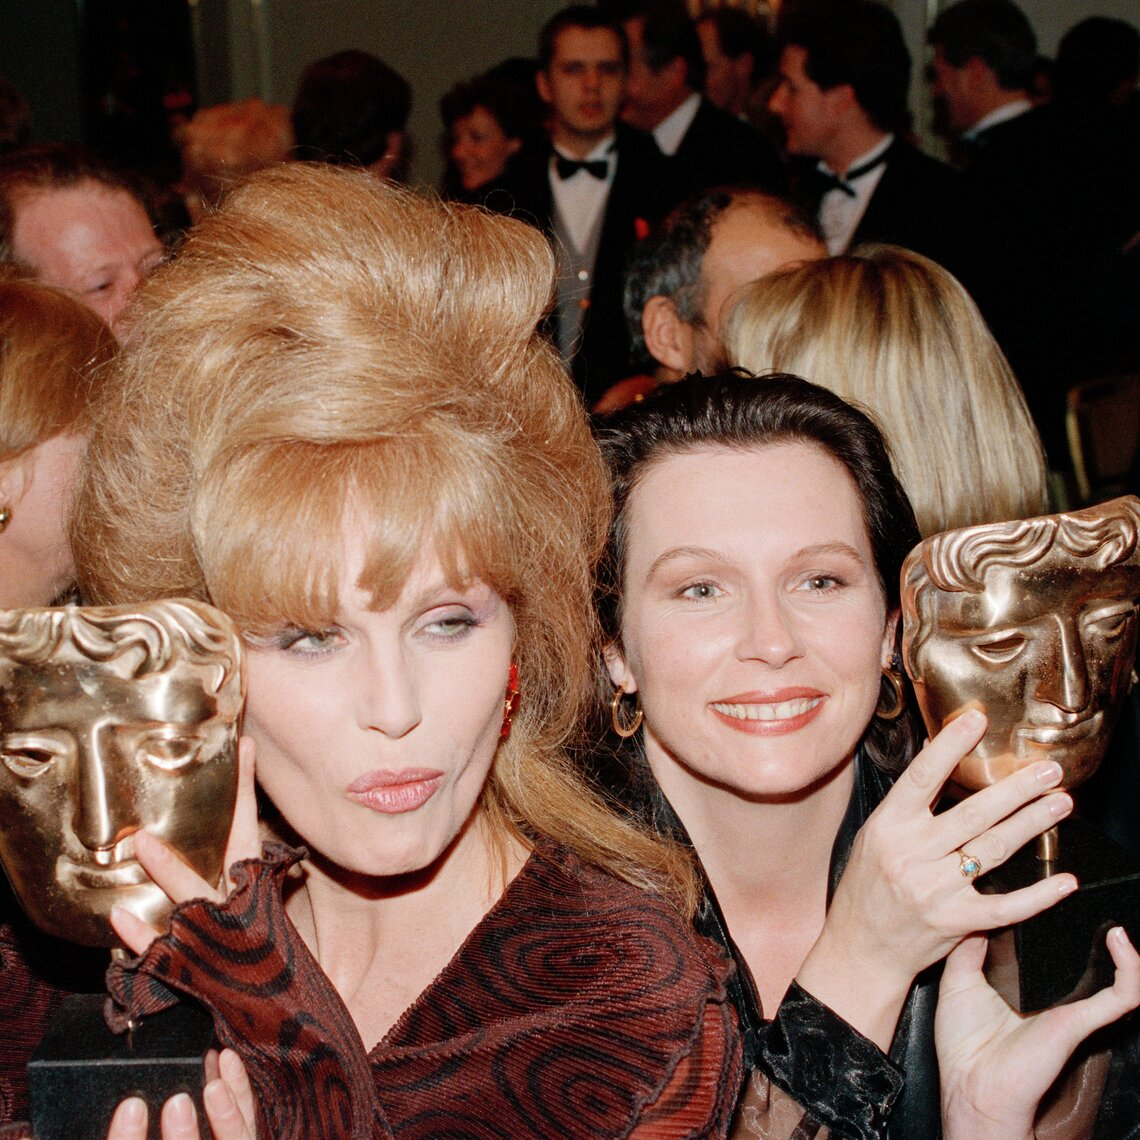 The BRITISH ACADEMY of FILM and TELEVISION ARTS AWARDS in 1993